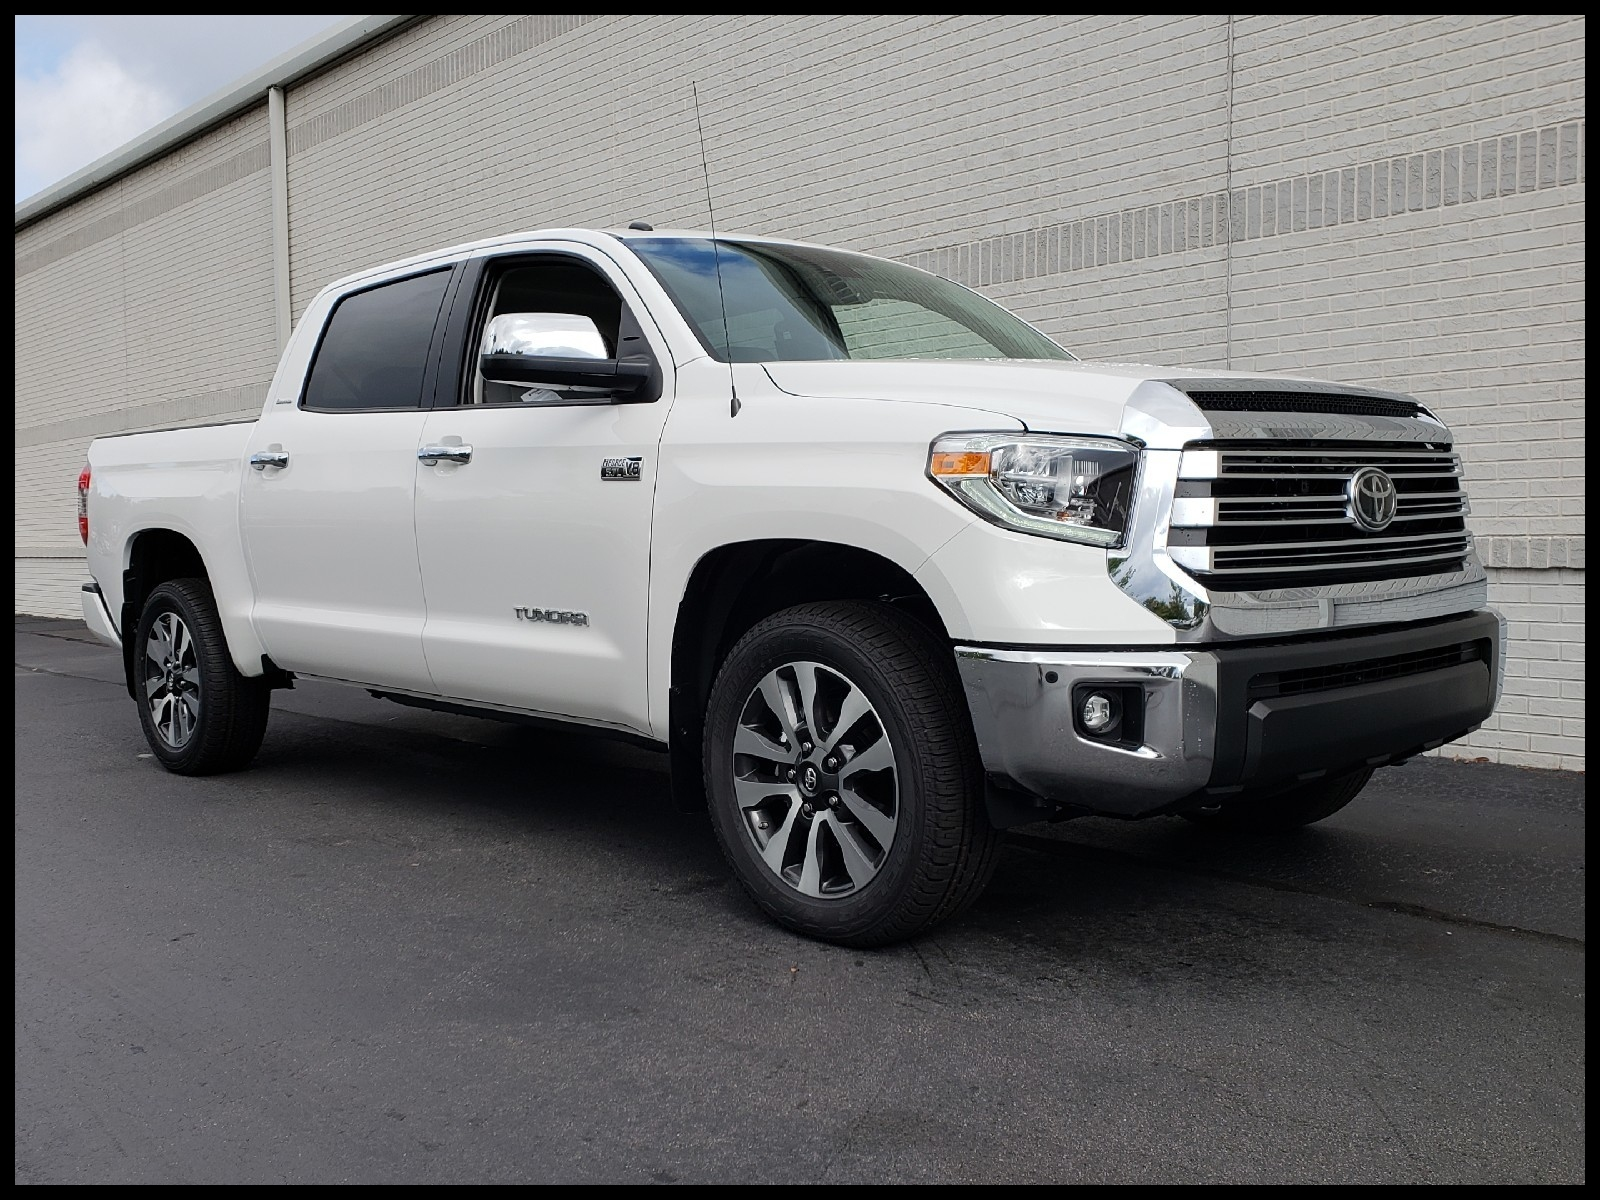 New 2019 Toyota Tundra Limited 5 7L V8 Truck in Newnan